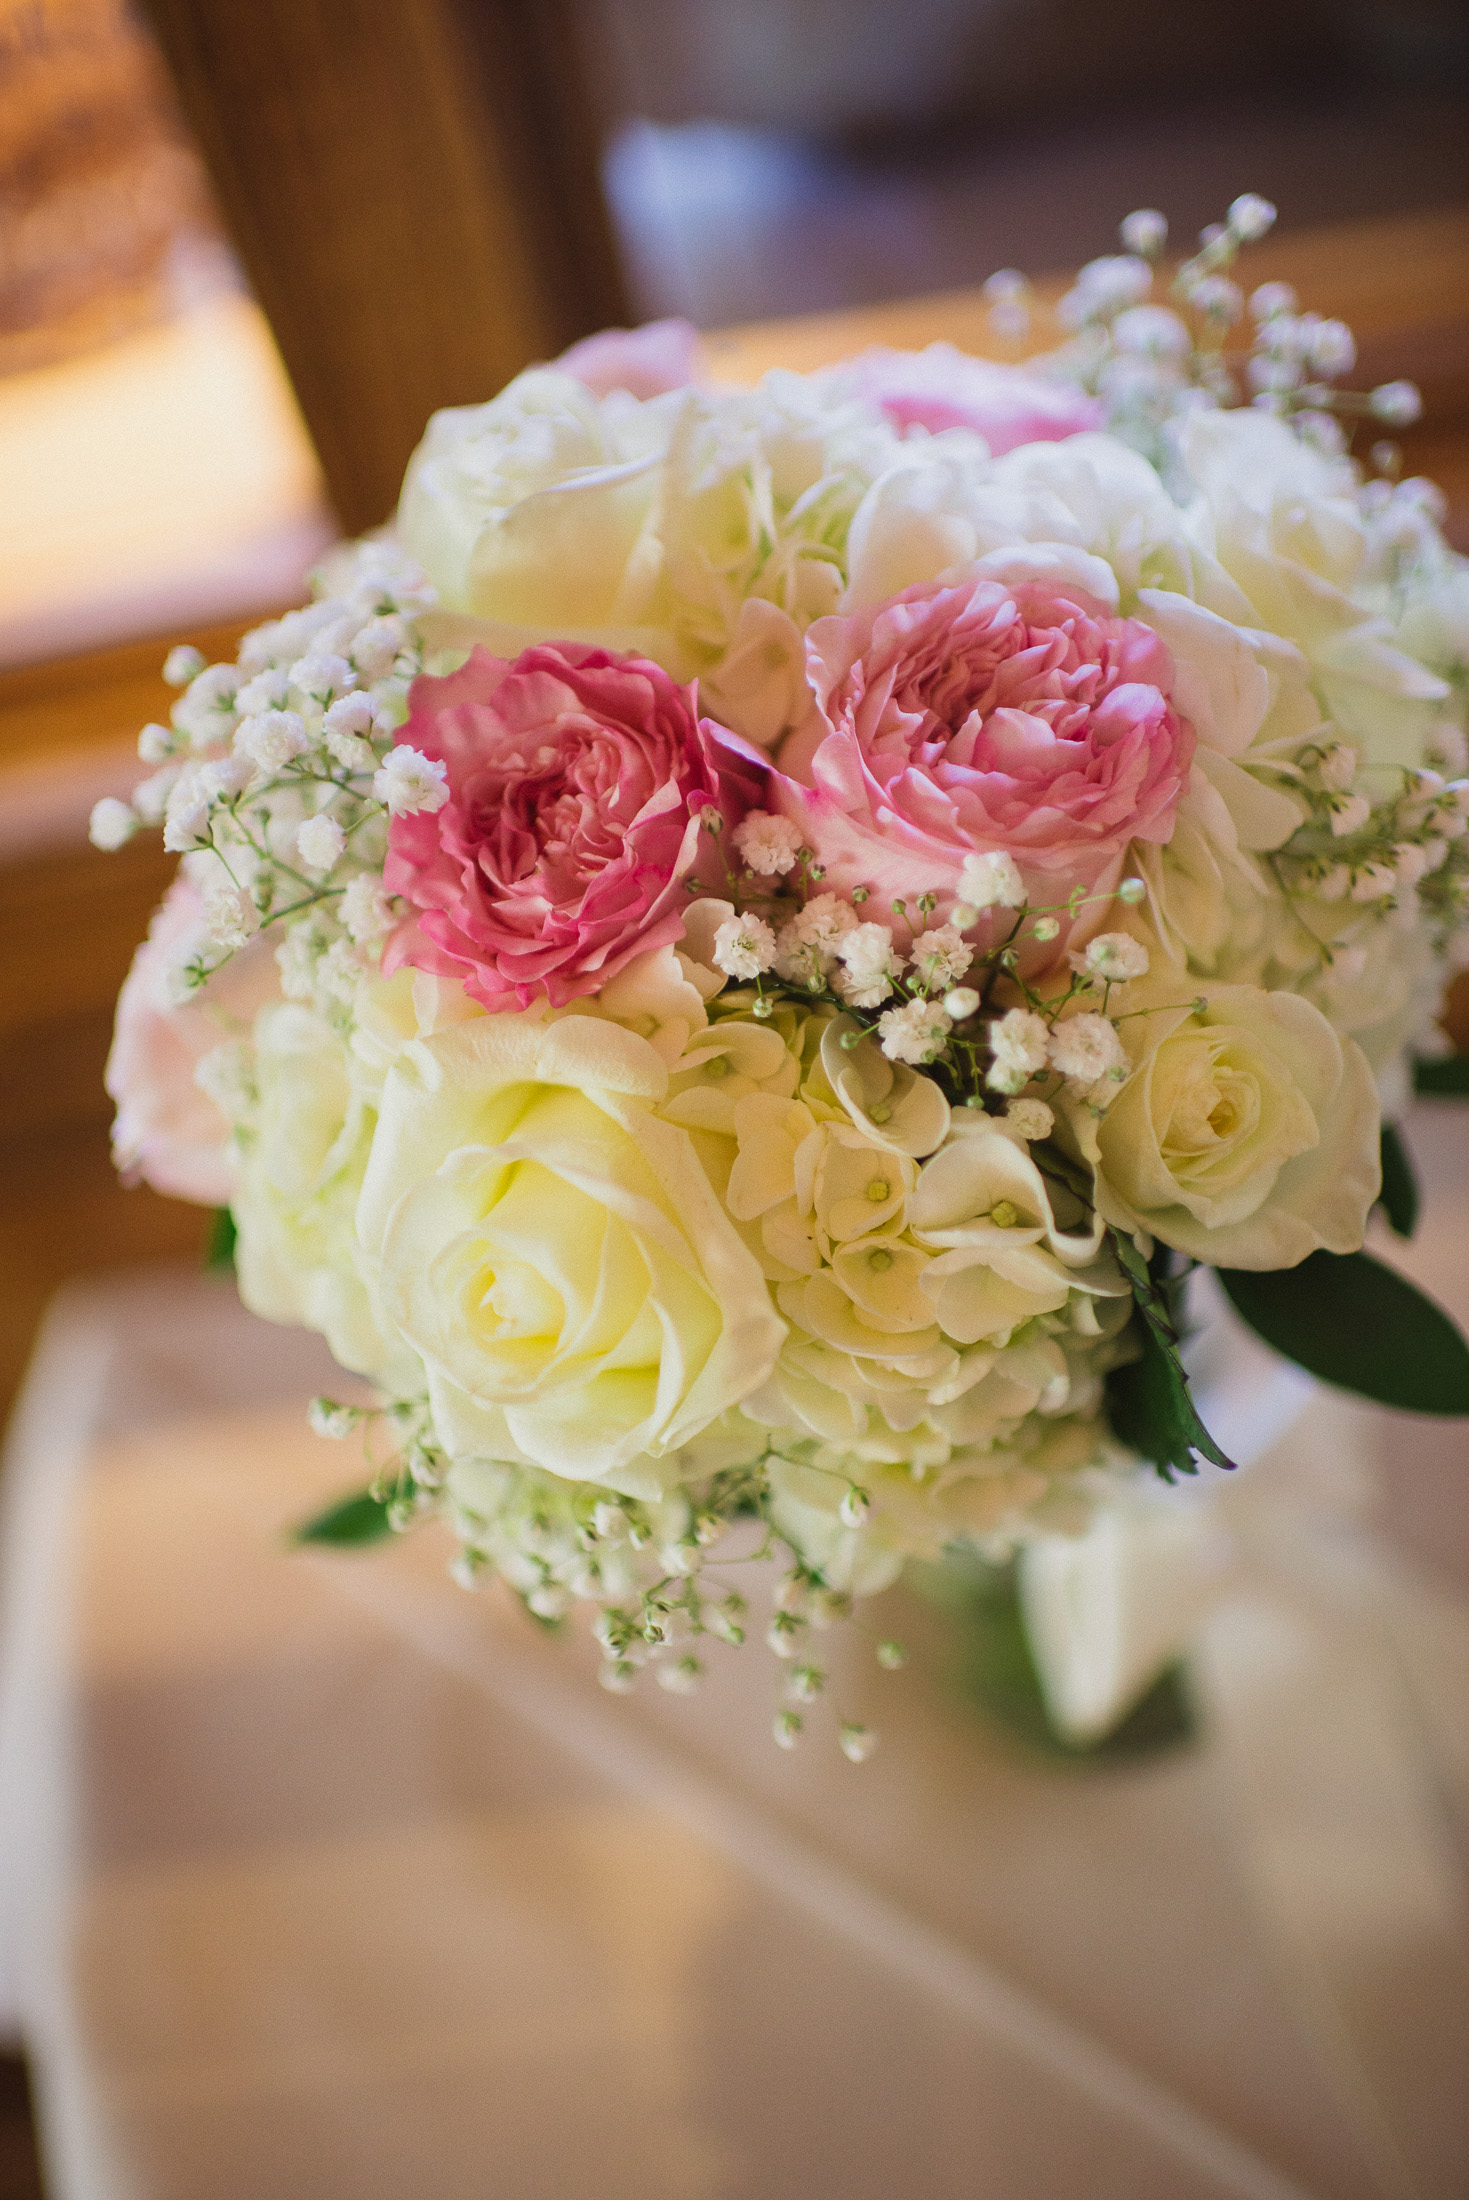 NH Wedding Photographer: bouquet at head table